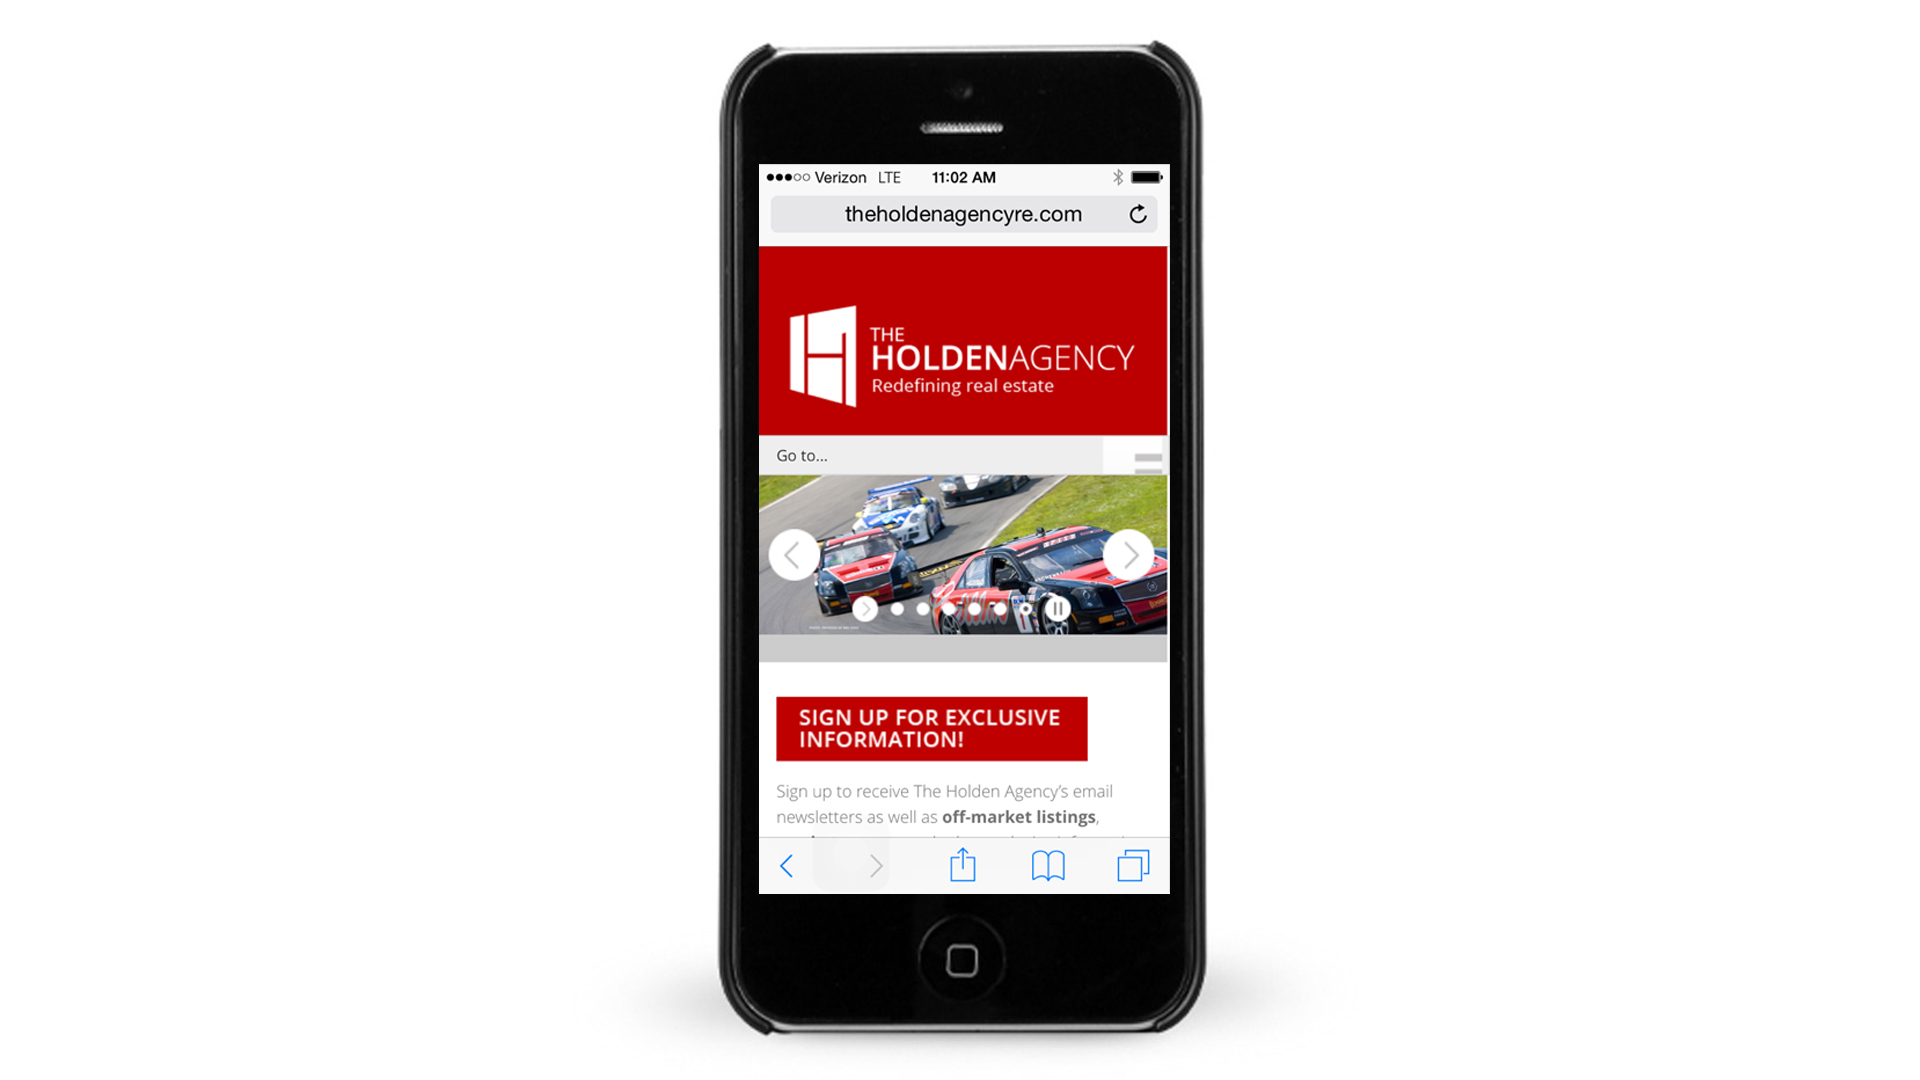 The Holden Agency Mobile Web